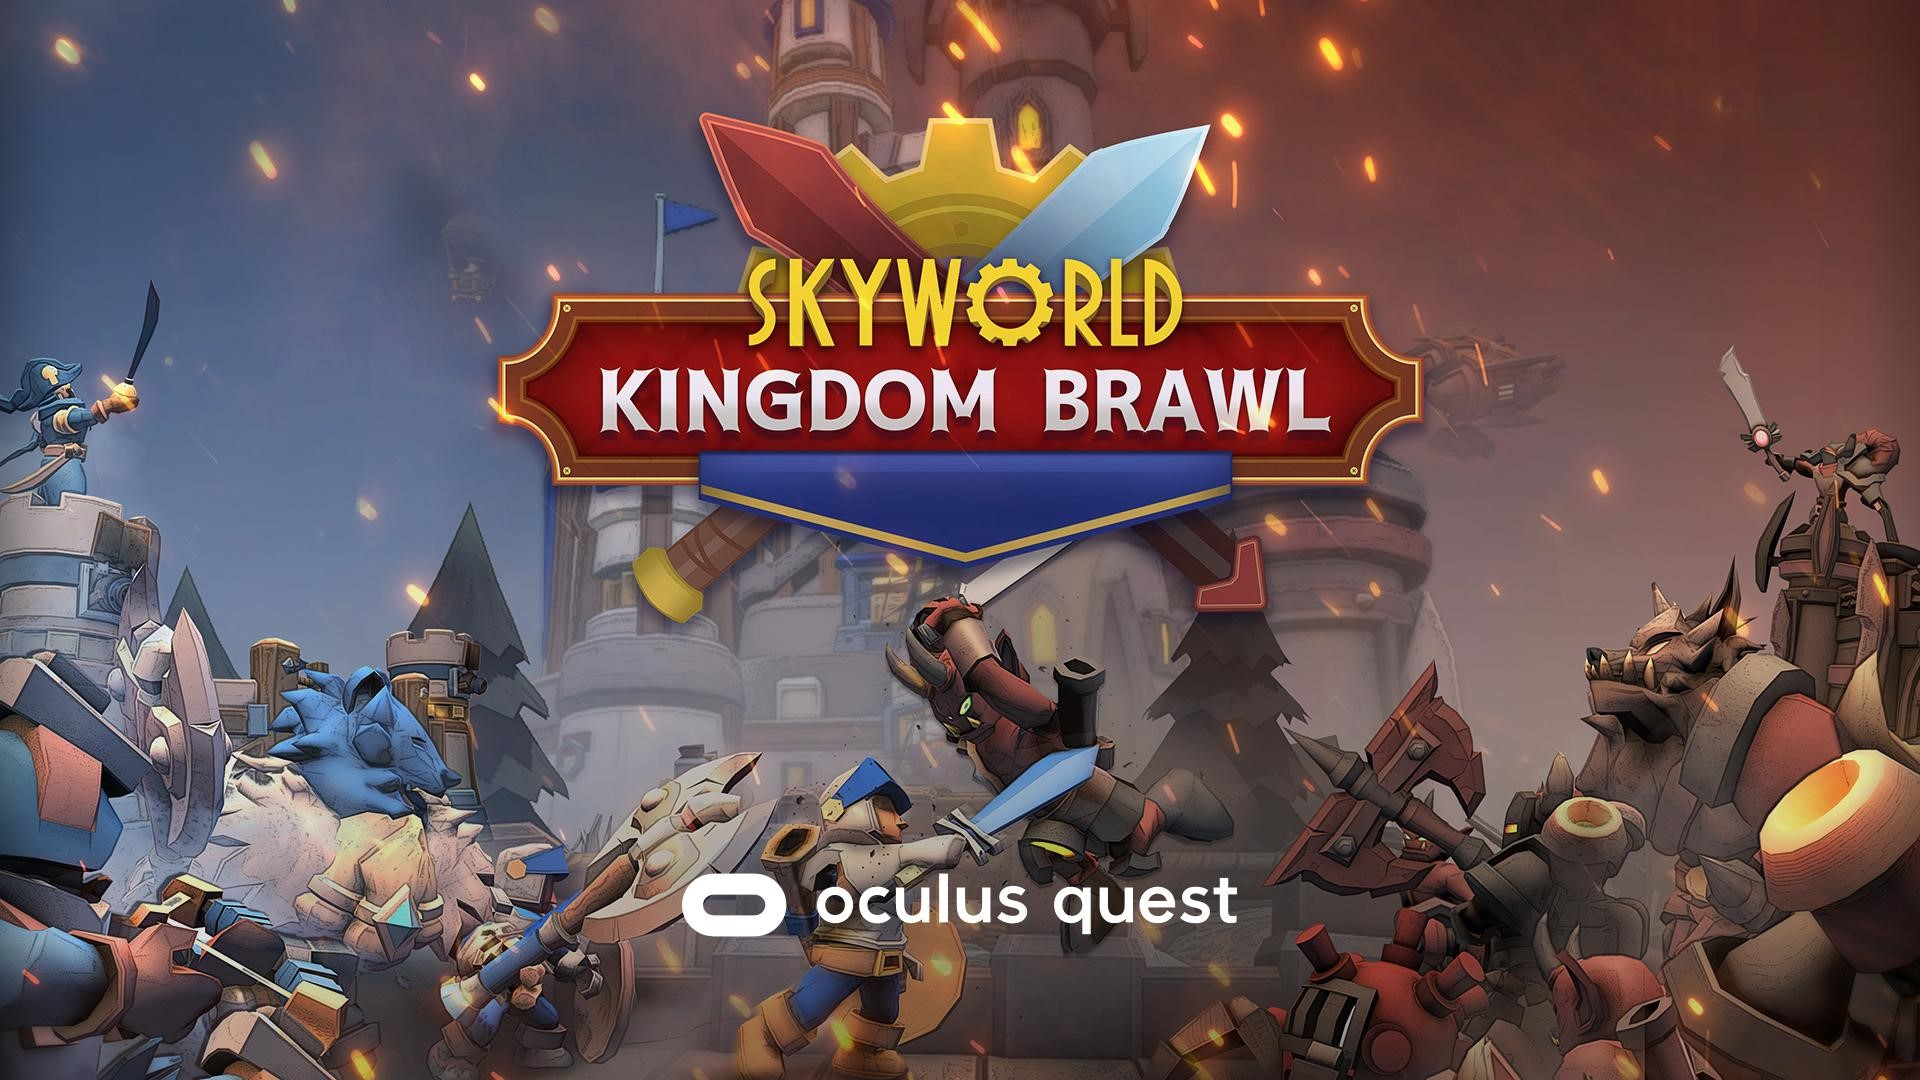 Skyworld Brawl